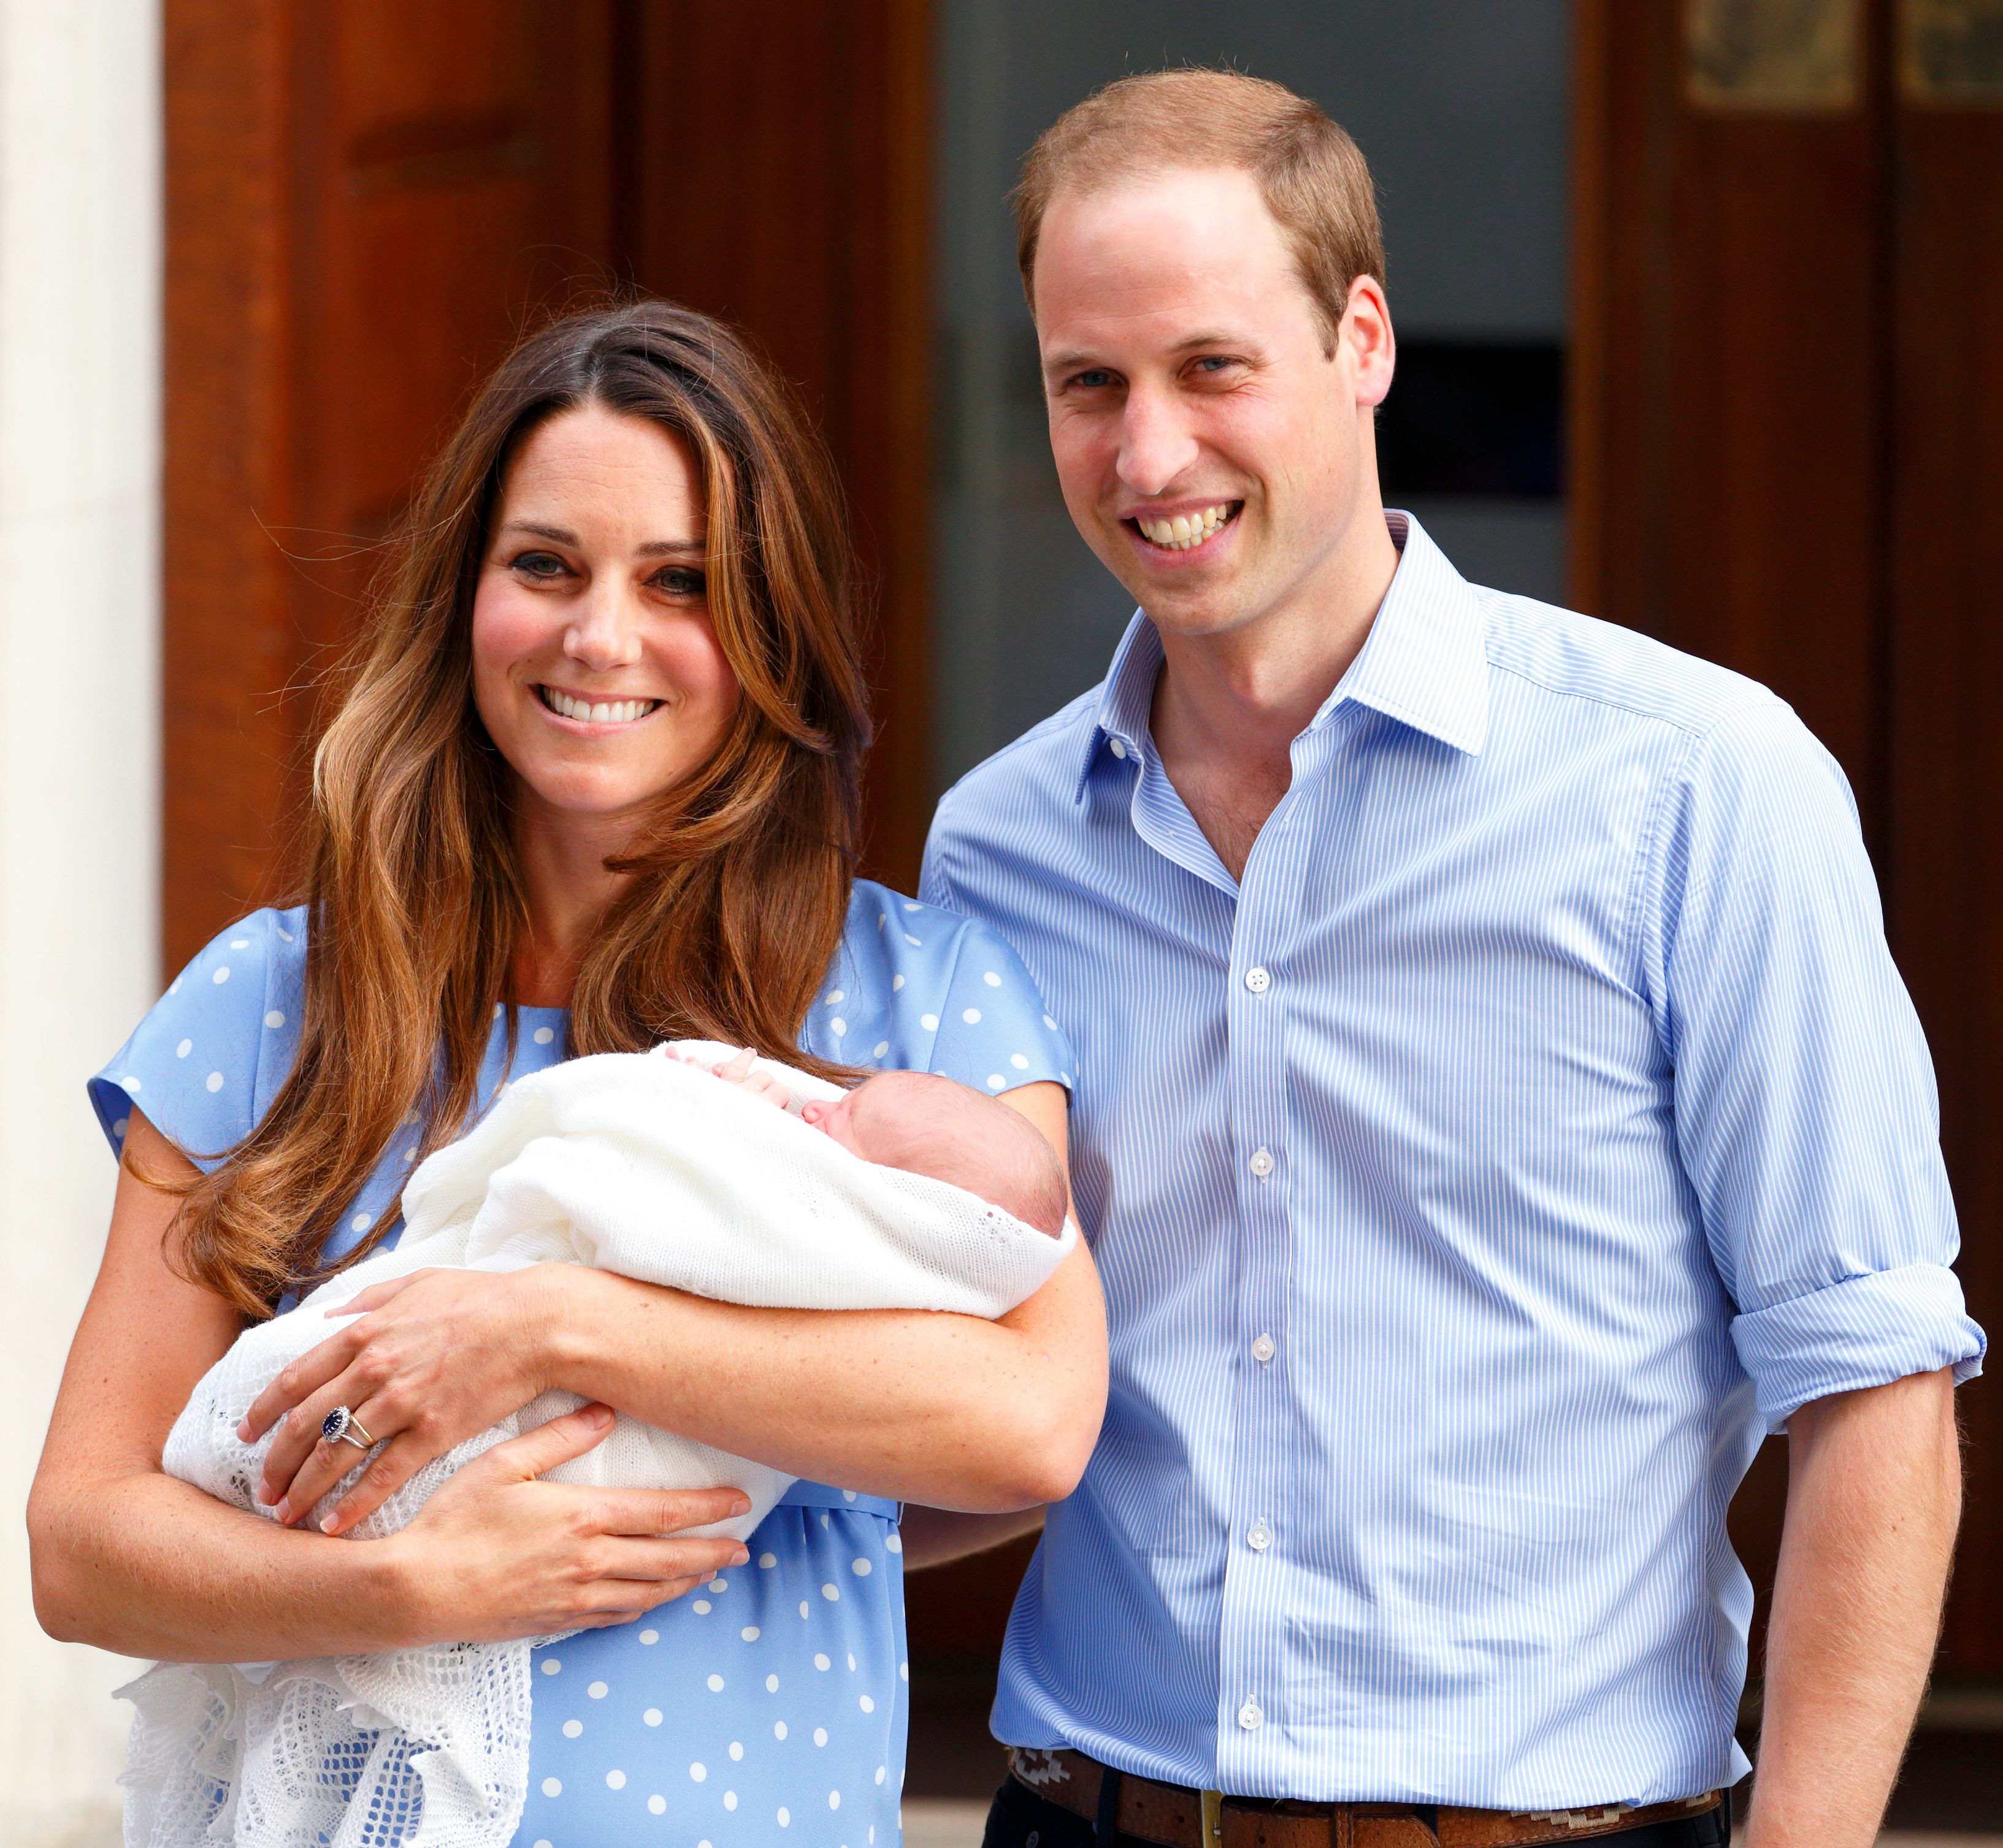 Katherine Middleton and Prince William with their newborn son at St Mary's Hospital on July 23, 2013. | Photo: Getty Images